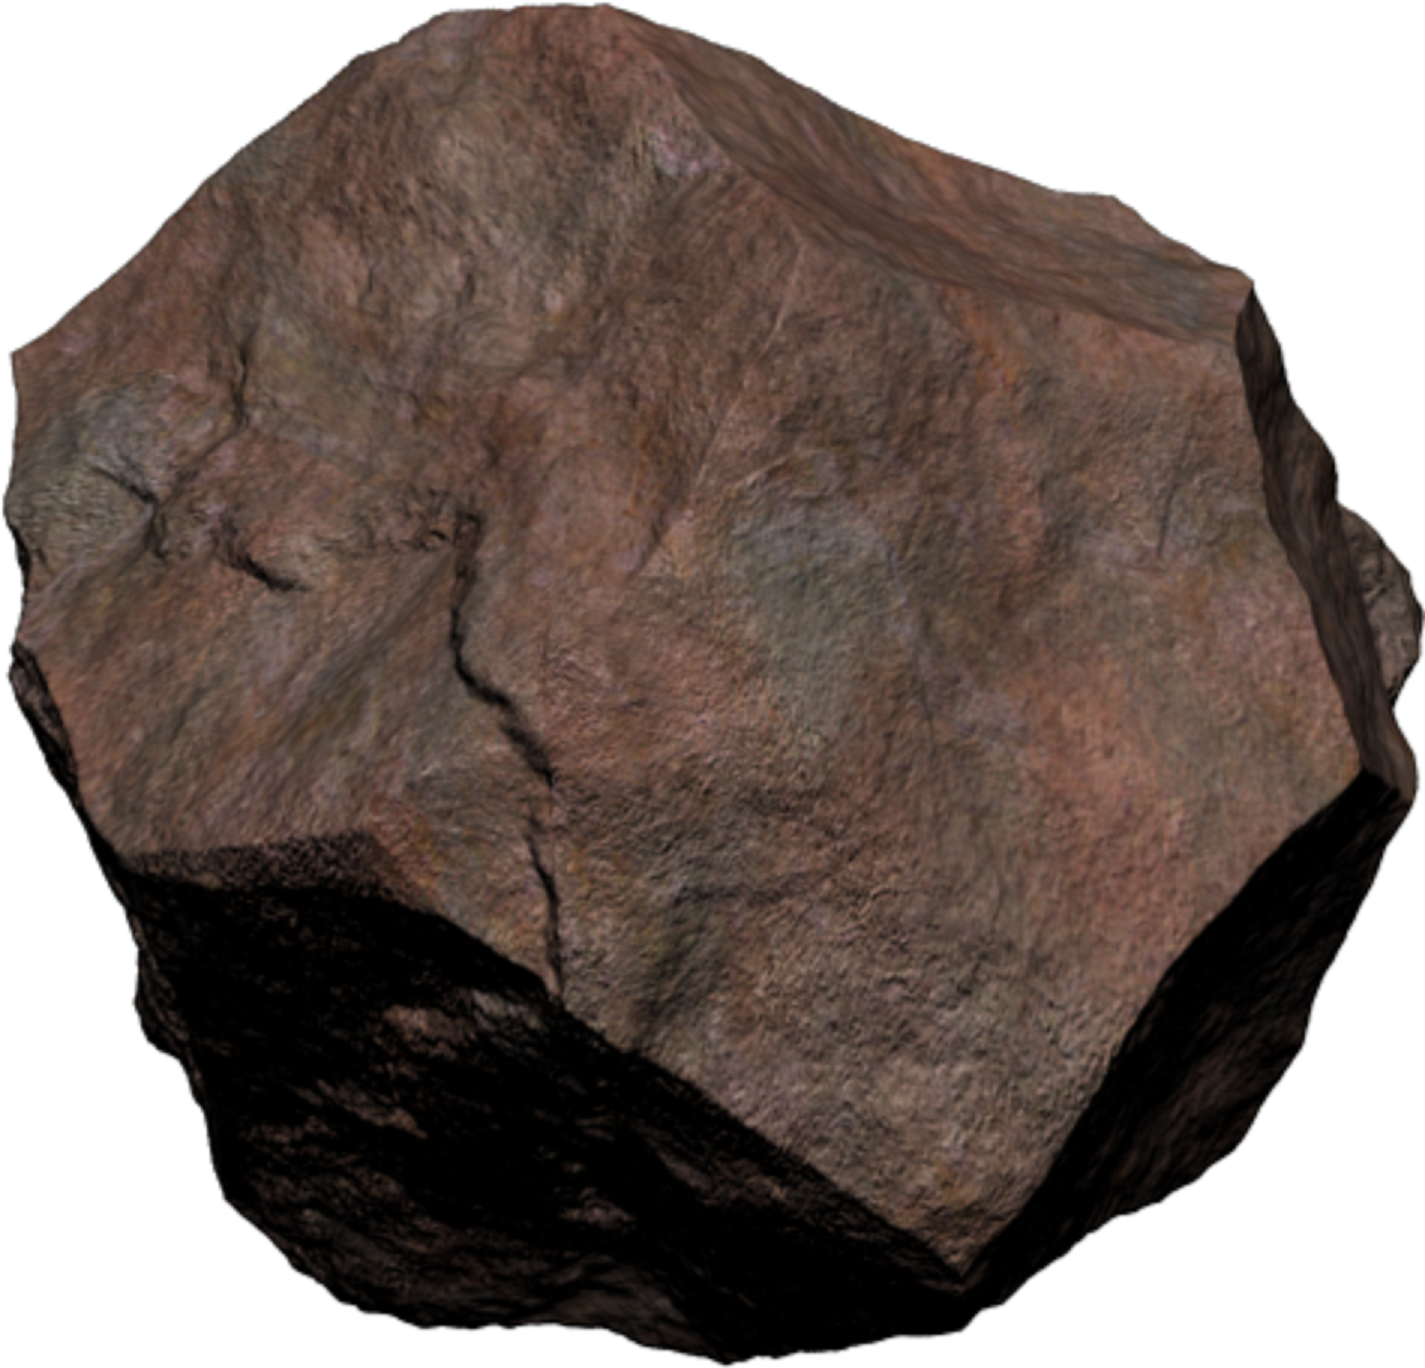 Simple Rock Image 318.35 Kb